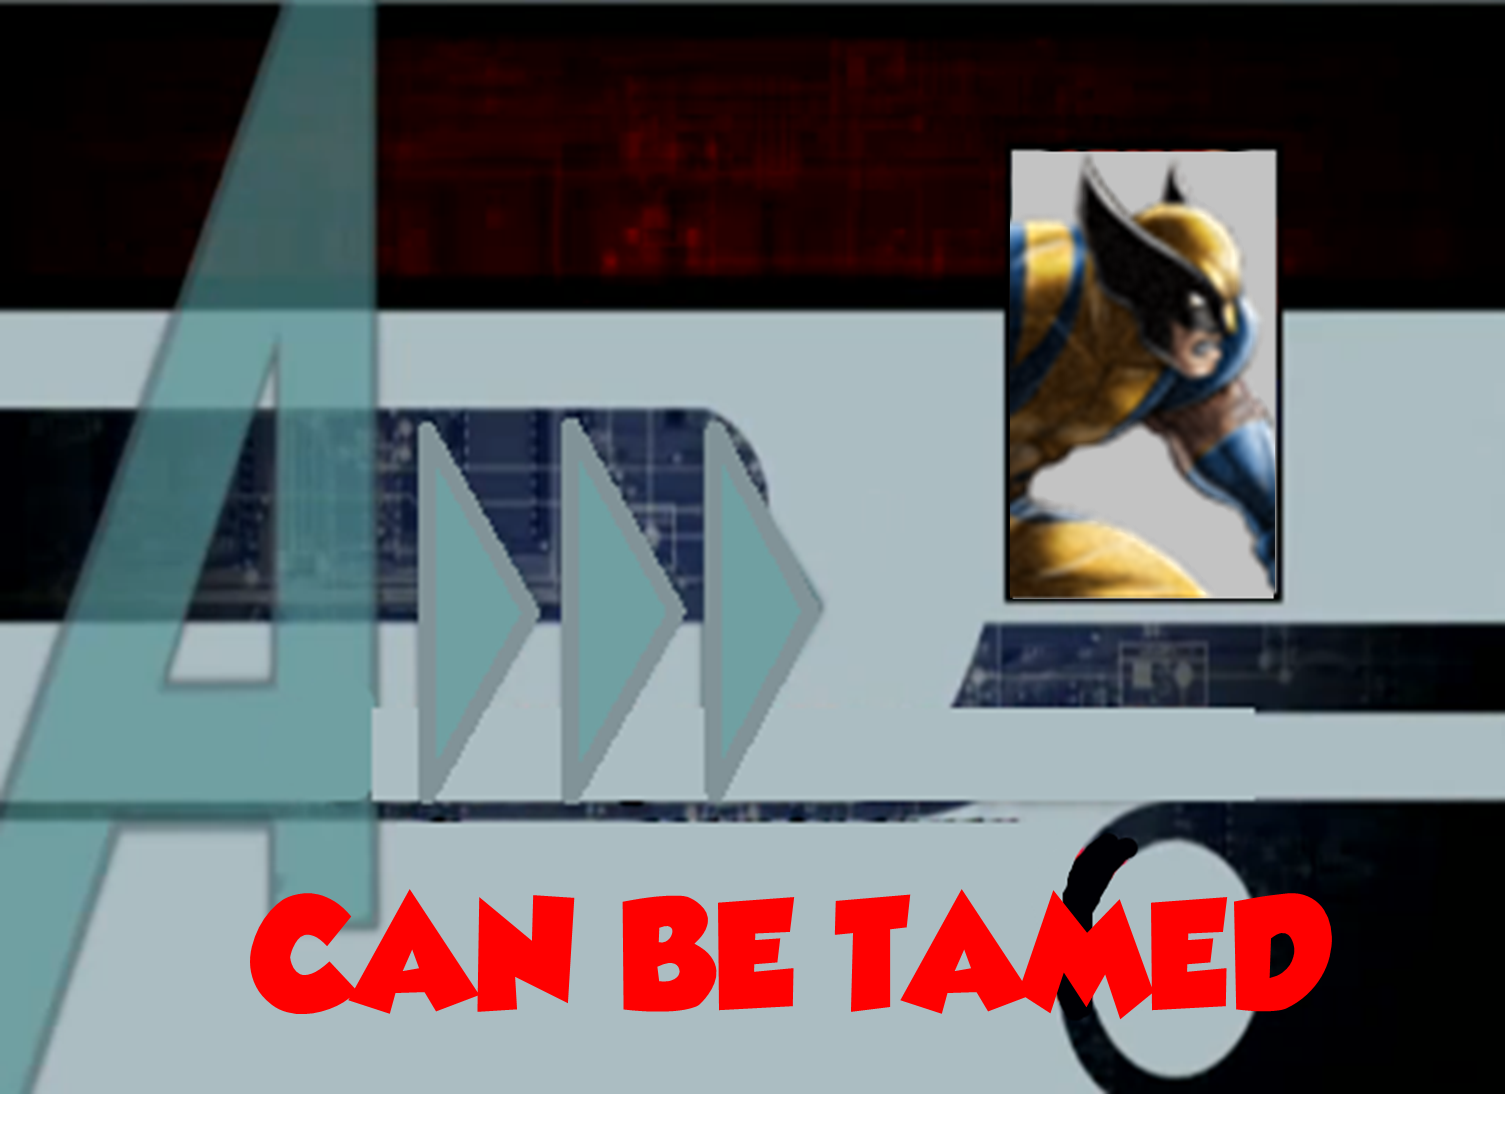 Can Be Tamed (A!)